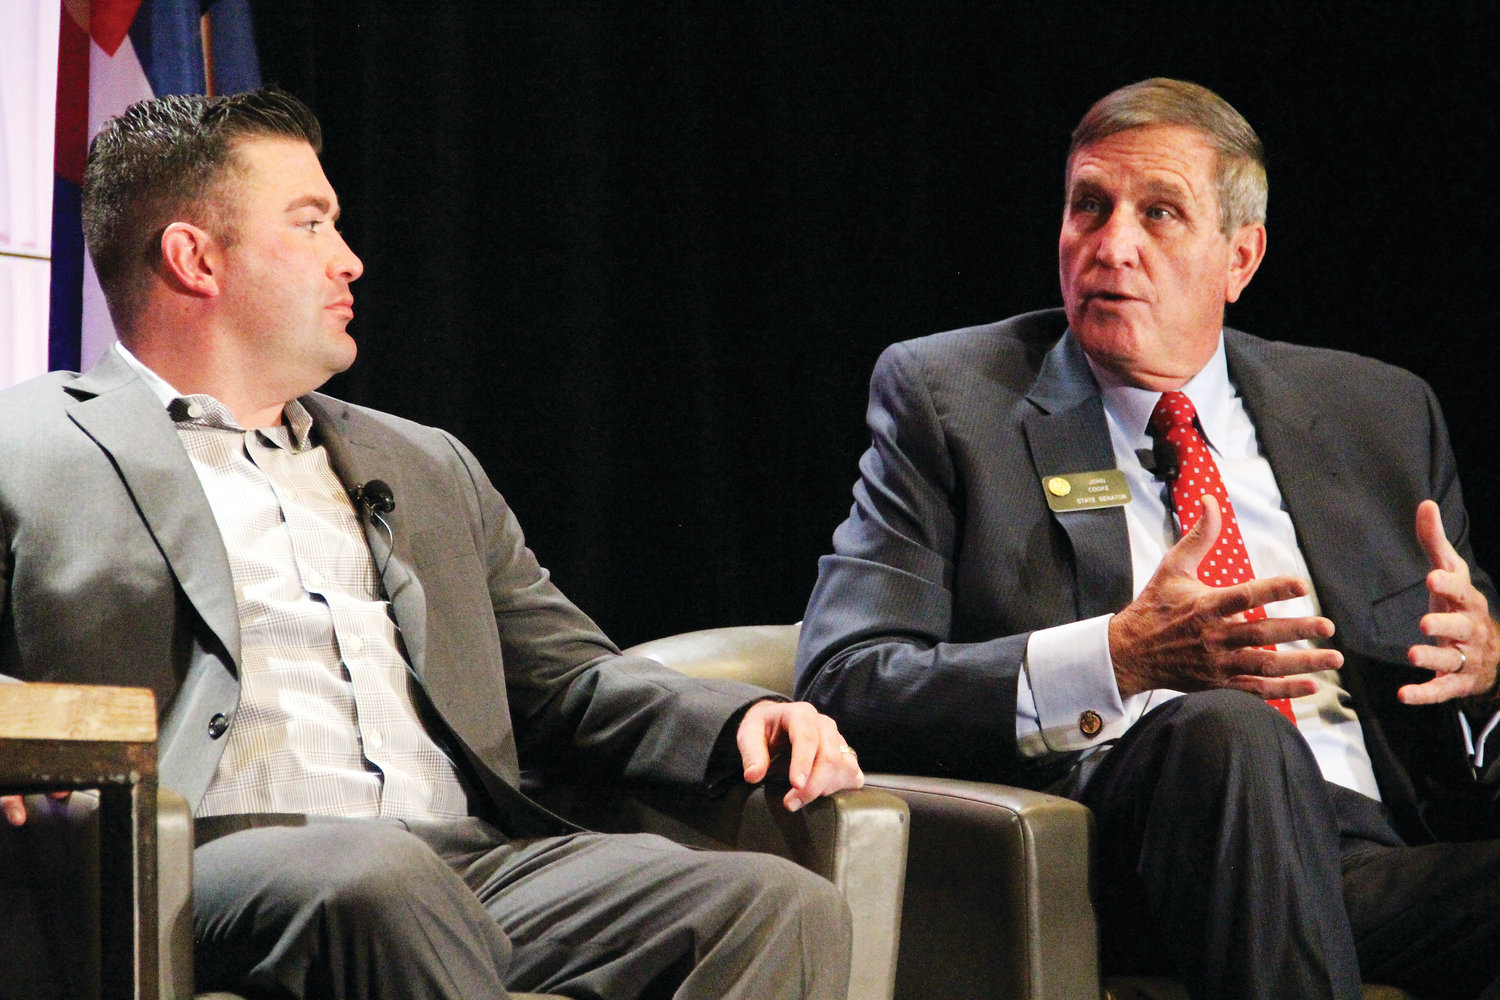 Left, state House Minority Leader Patrick Neville, R-Castle Rock, and Senate Assistant Minority Leader John Cooke, R-Greeley, on stage Jan. 3 at the sixth annual Business Legislative Preview. The event, put on by the Denver Metro Chamber of Commerce, the Colorado Competitive Council and the Denver Business Journal, was held at the Hyatt Regency Denver hotel in downtown Denver.